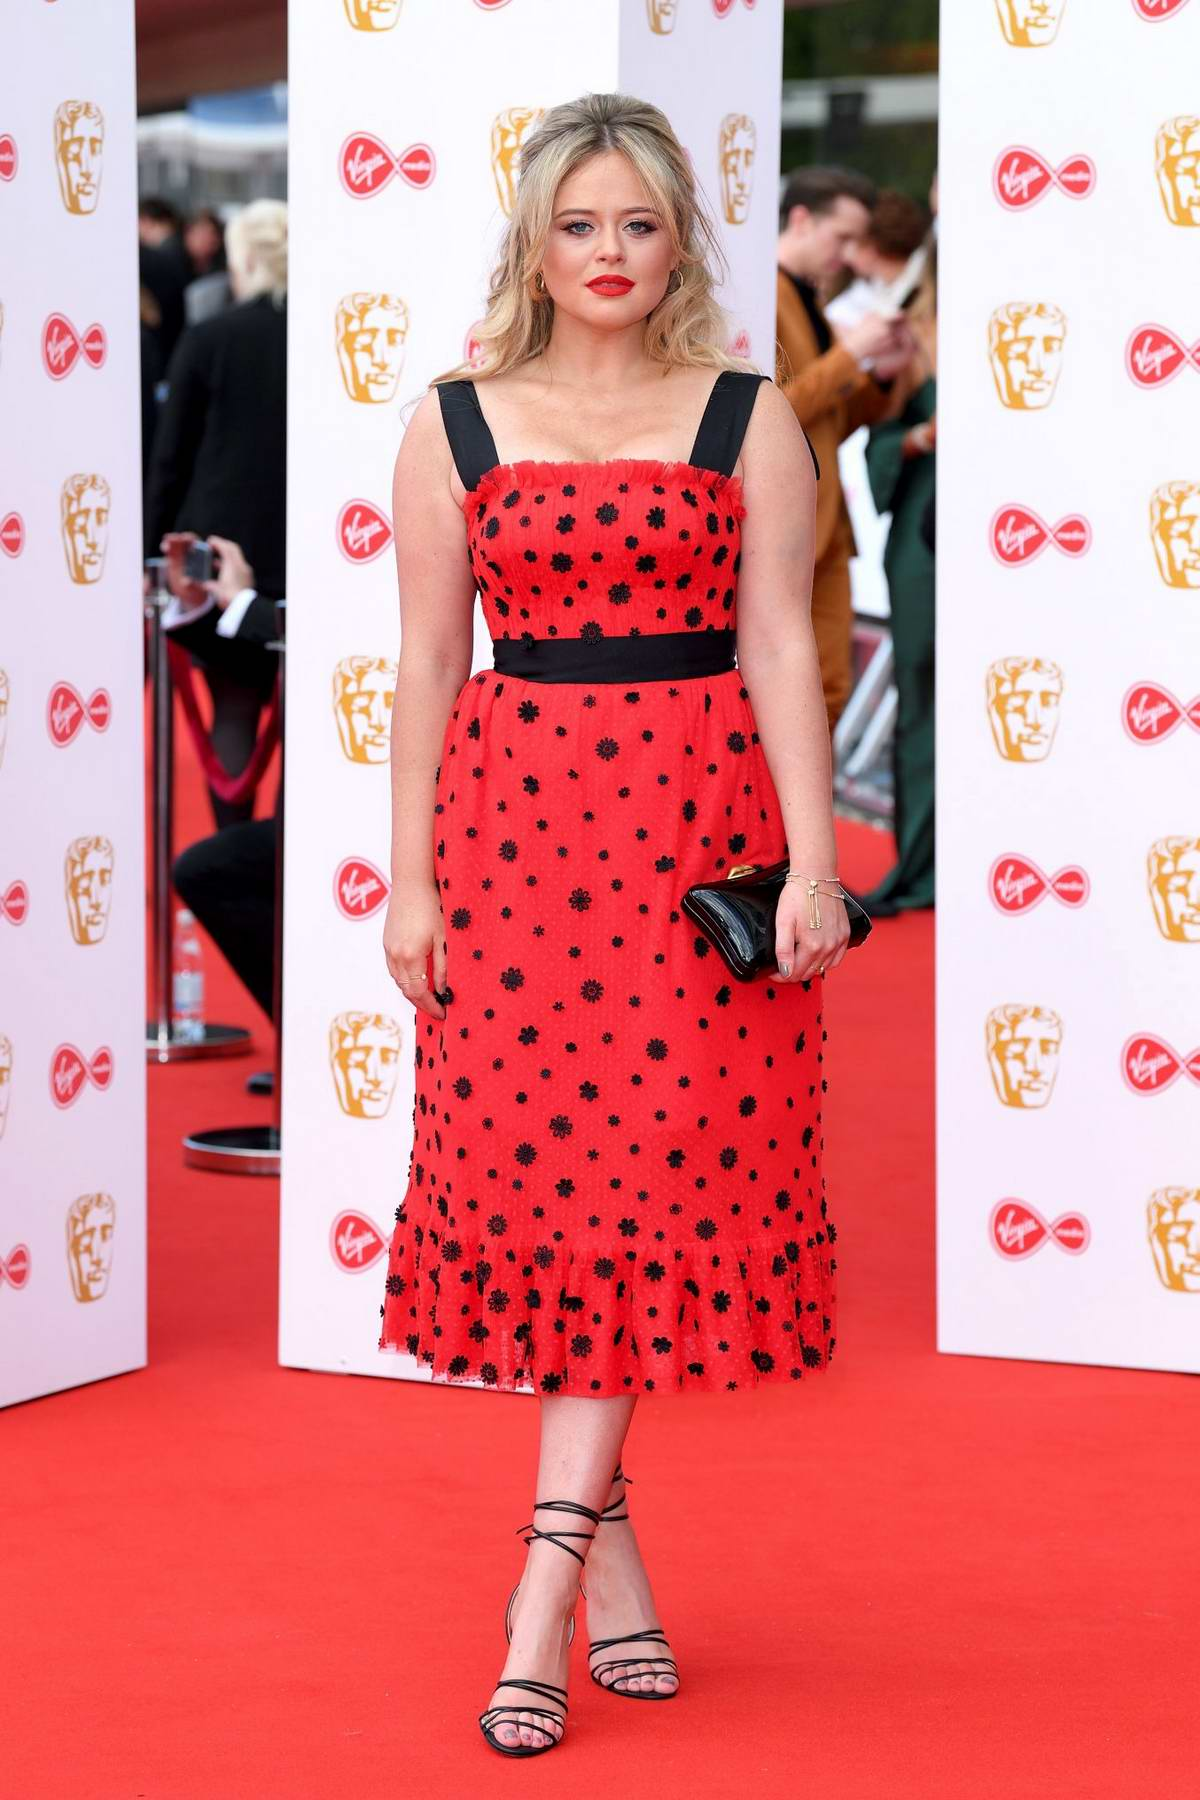 Emily Atack attends the 2019 British Academy Television Awards at Royal Festival Hall in London, UK